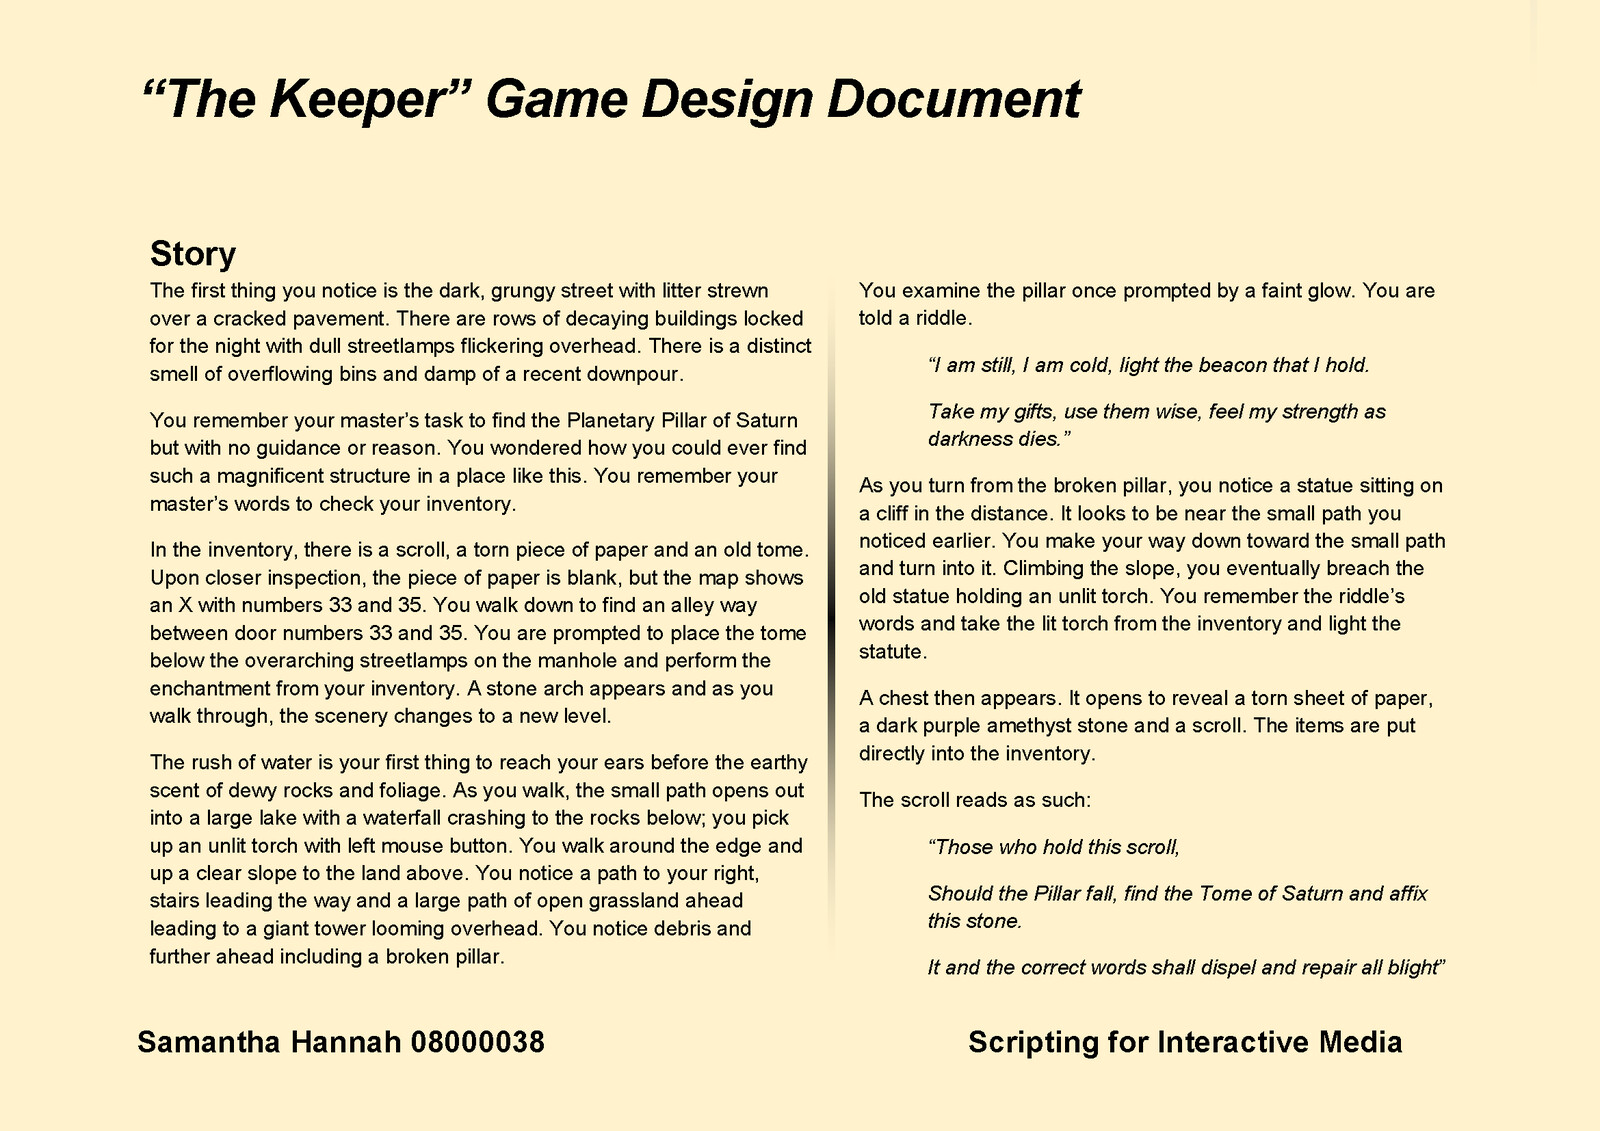 Game Design Document Page 5